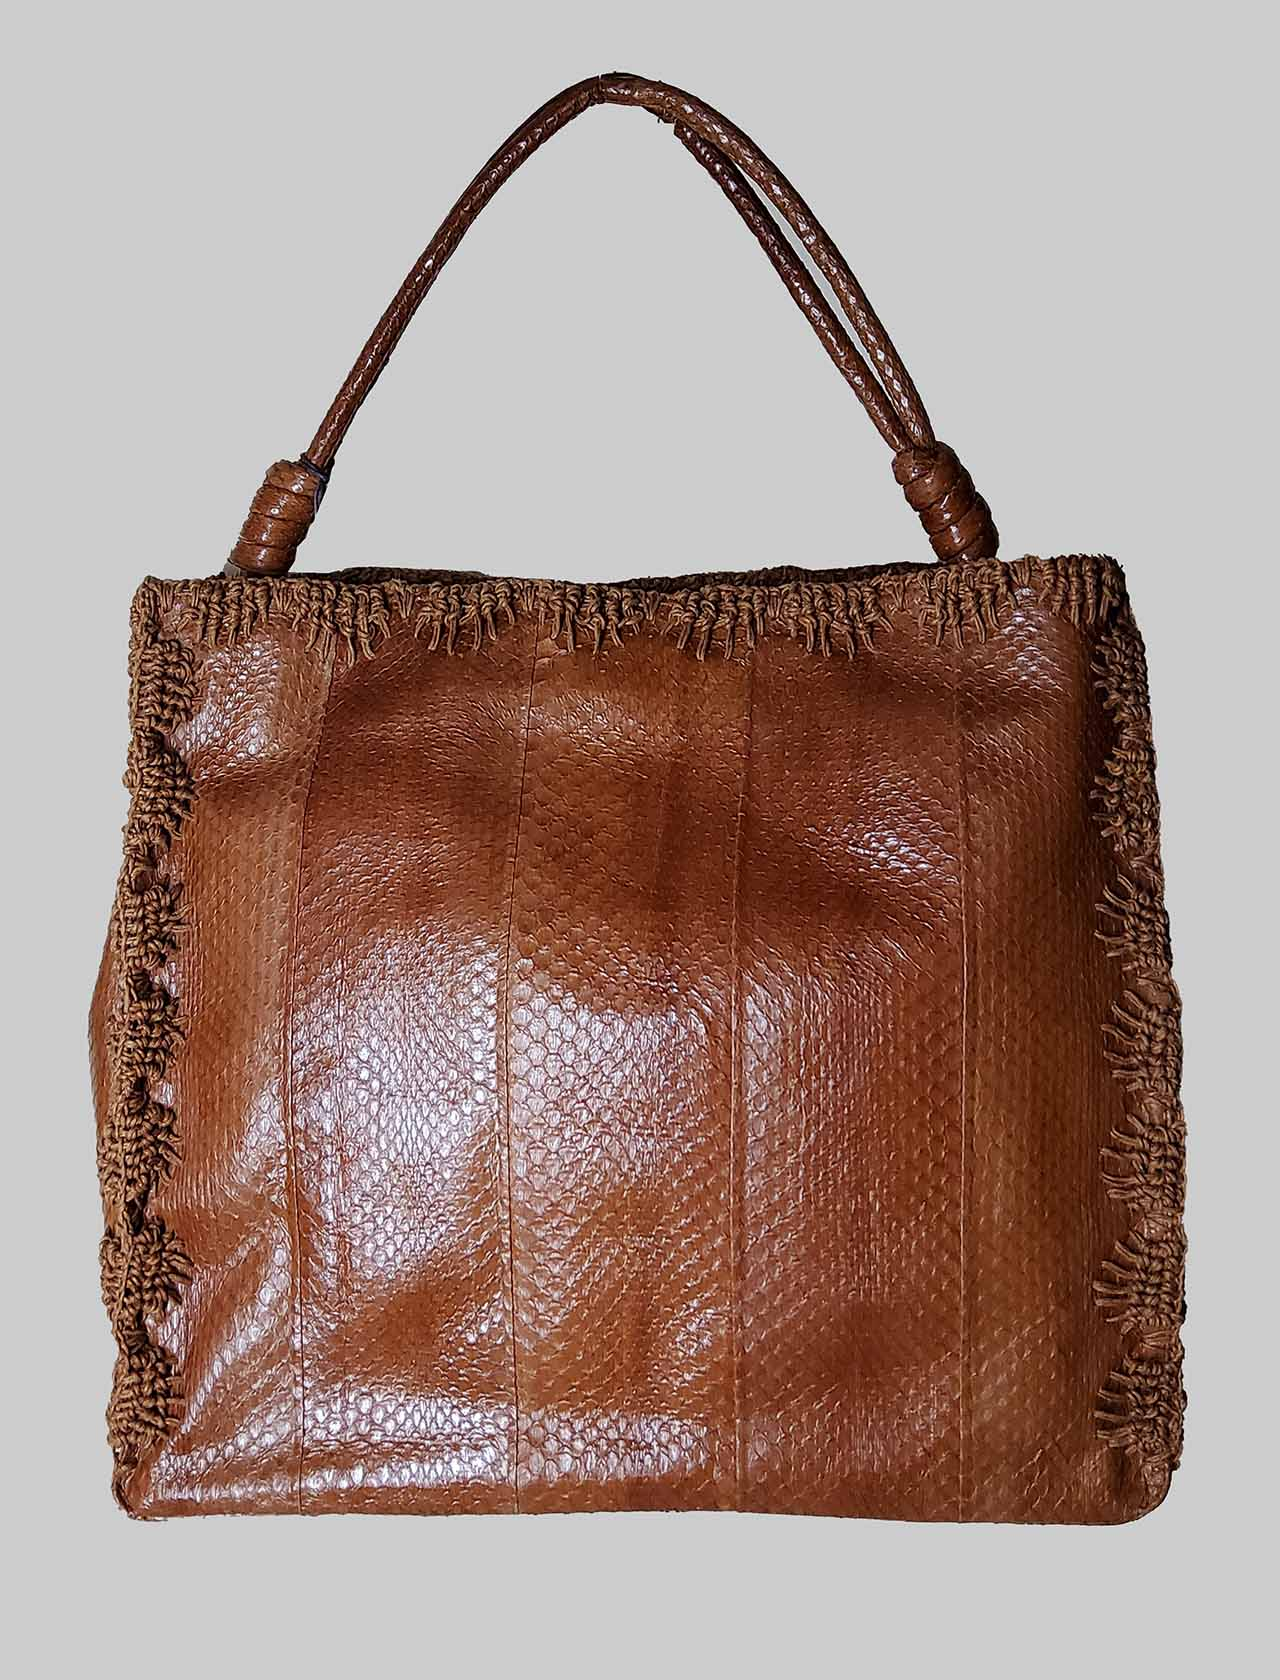 Large Woman Handbag Exotic Crochet in Leather Wips with Matching Stitching Maliparmi | Bags and backpacks | BI00220143840008